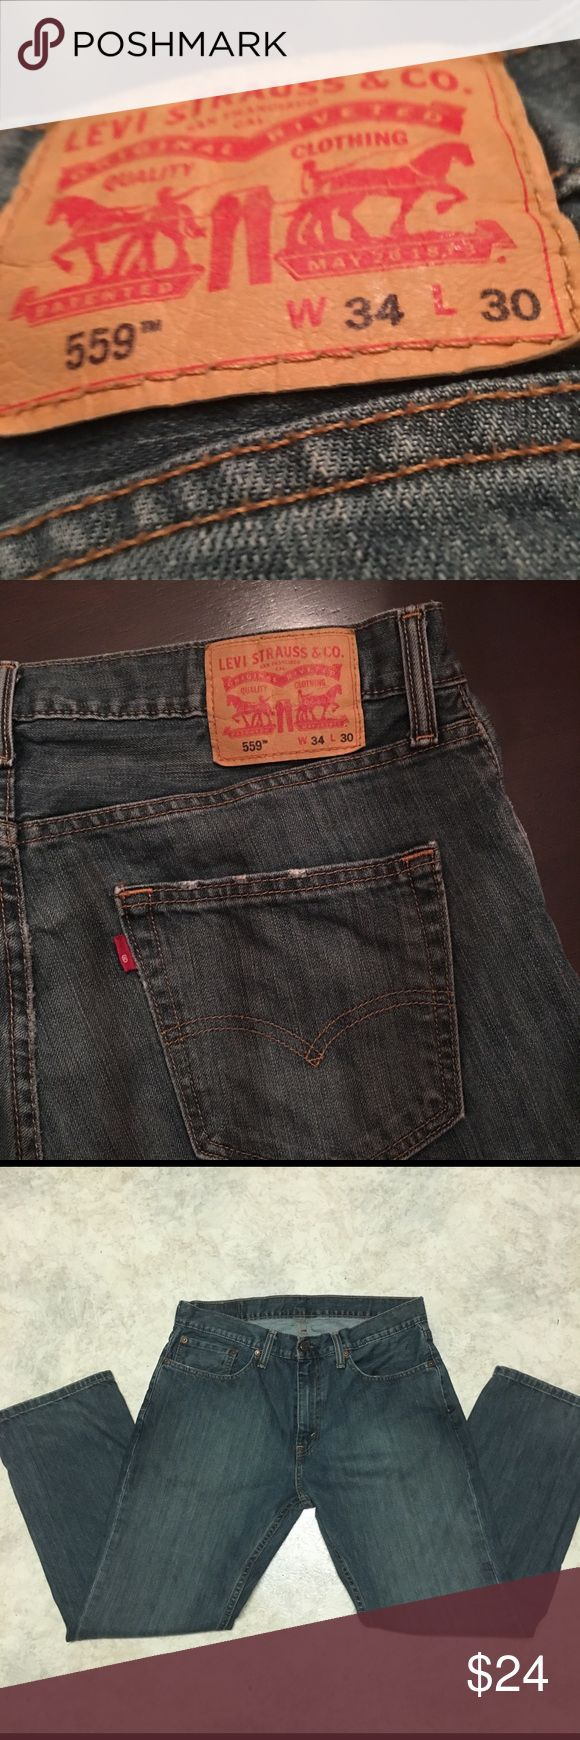 Men's Levi 559 jeans 34x30 Men's Levi's 559 size 34x30. Very light wear on back pockets can be seen in pictures. Levi's Jeans